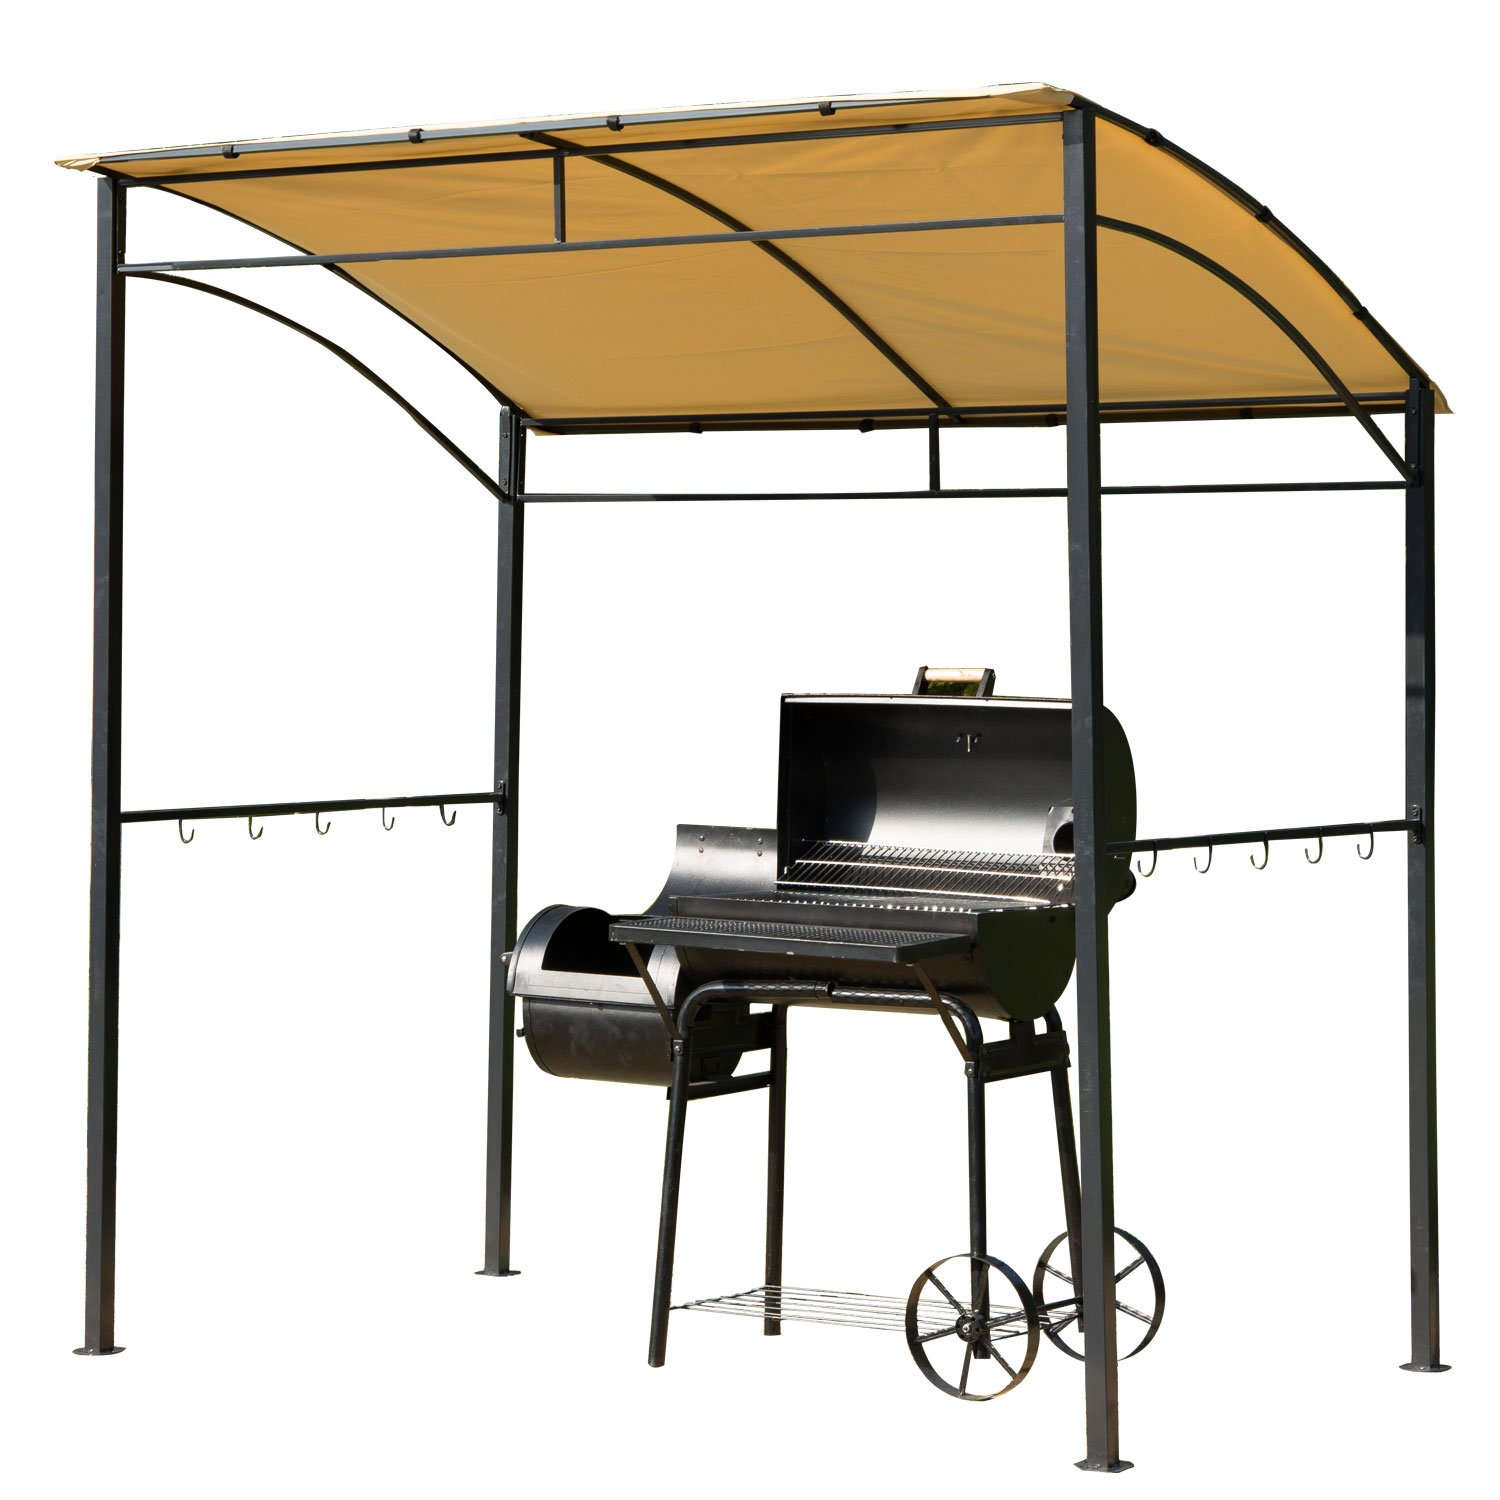 Amazon.com  Outsunny BBQ Grill Canopy Steel Frame Shelter Brown  Outdoor Canopies  Garden u0026 Outdoor  sc 1 st  Amazon.com & Amazon.com : Outsunny BBQ Grill Canopy Steel Frame Shelter Brown ...